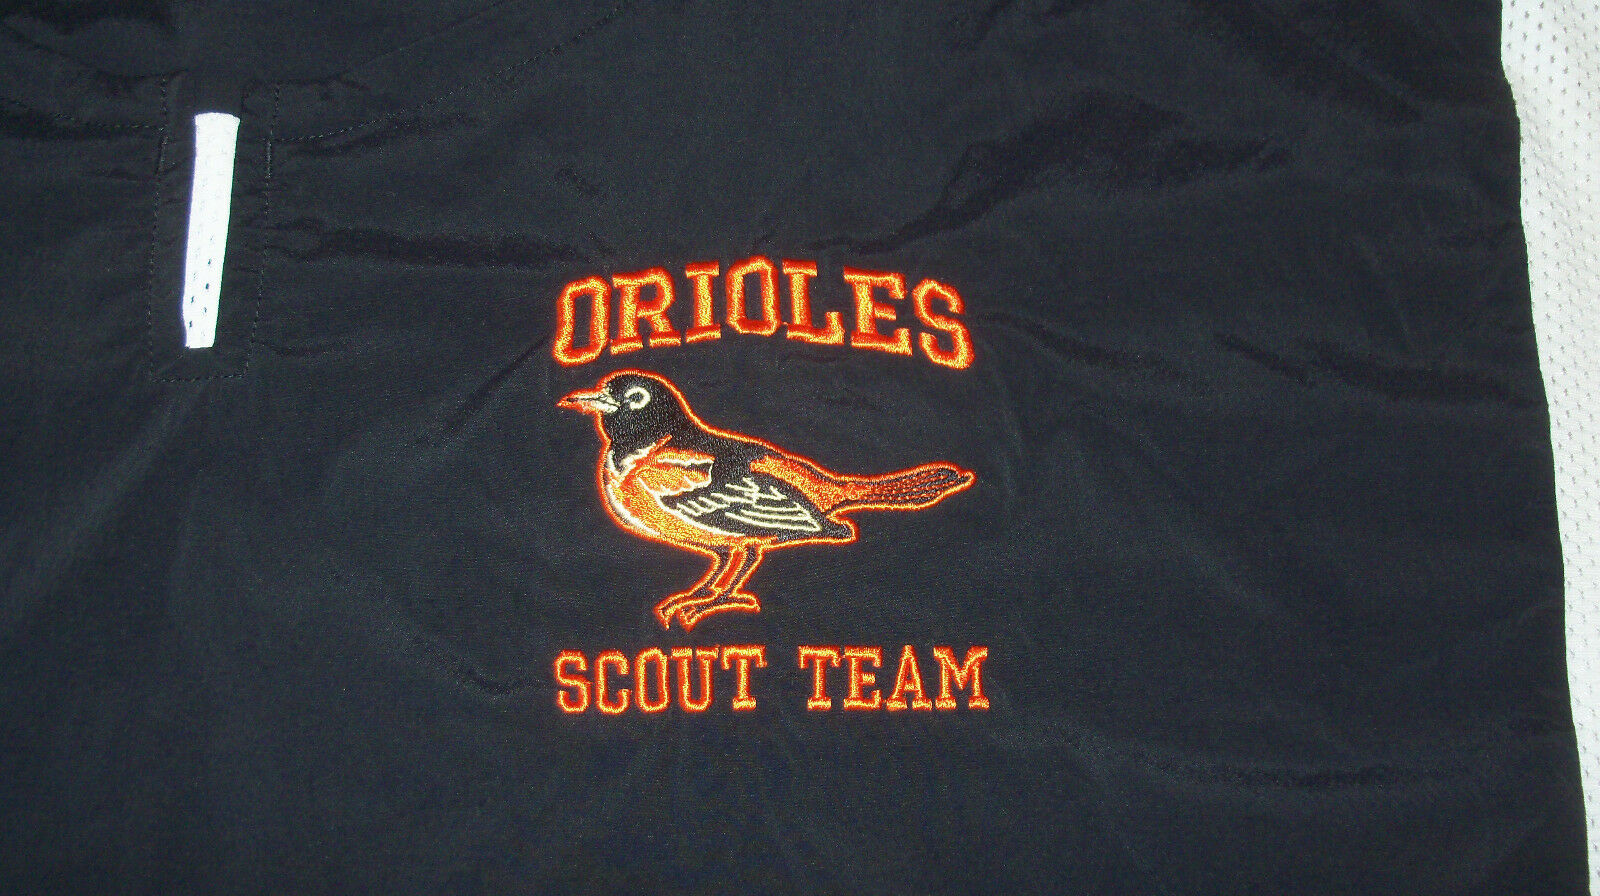 BALTIMORE ORIOLES Talent Scout Dri-Power Shirt XL - RUSSELL ATHLETIC Body Shell